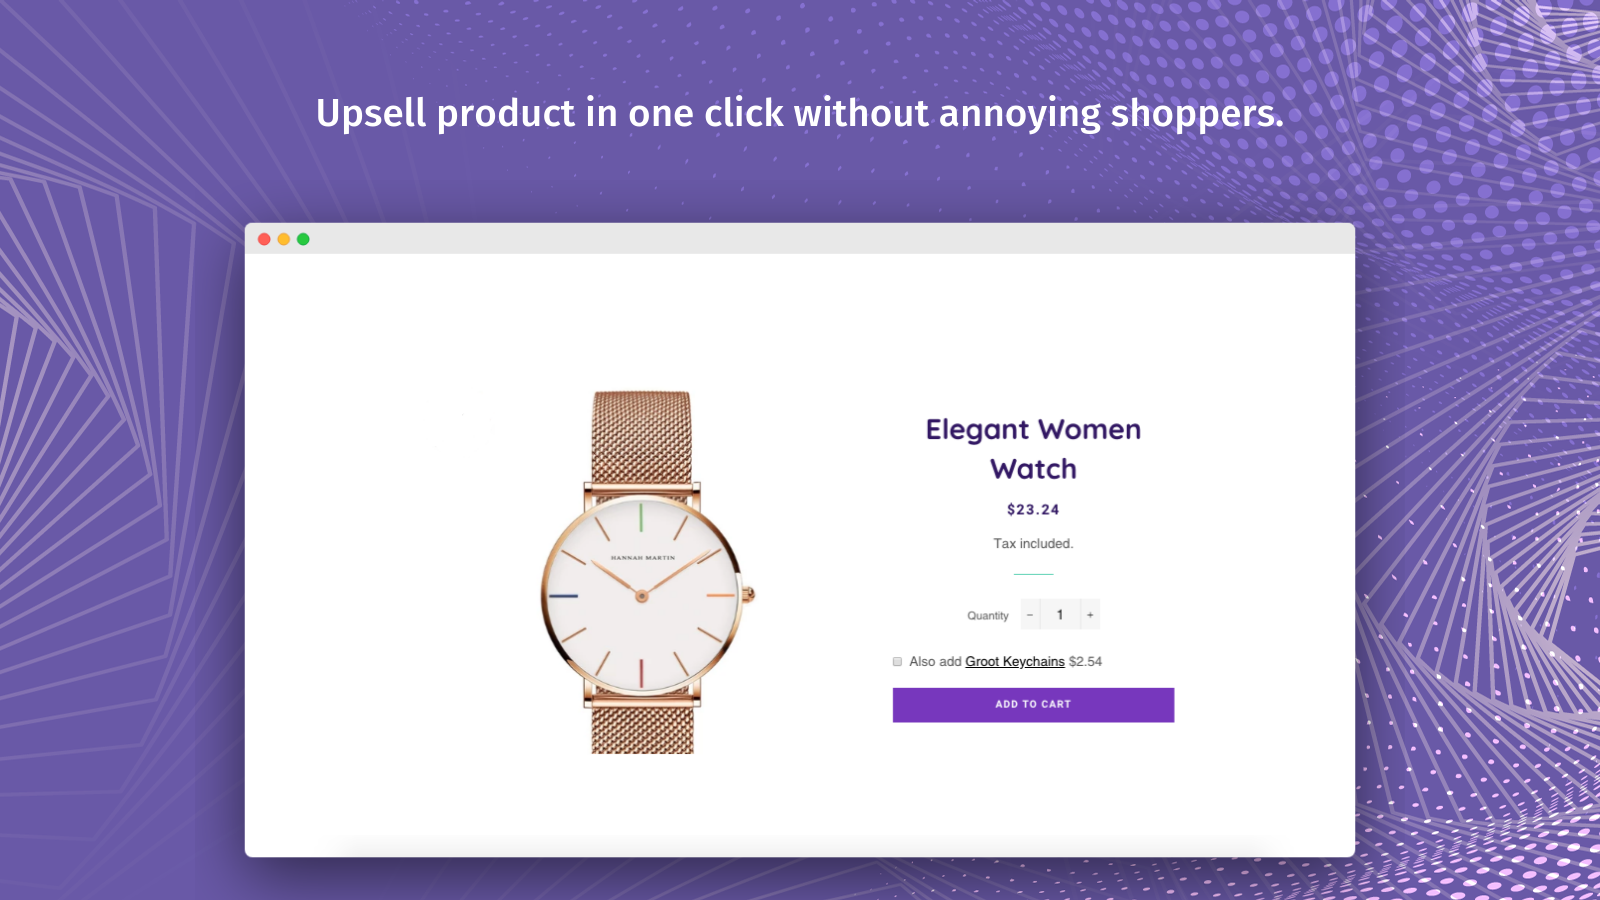 One Click Upsell – Immediately Increase Sales by 10-15%